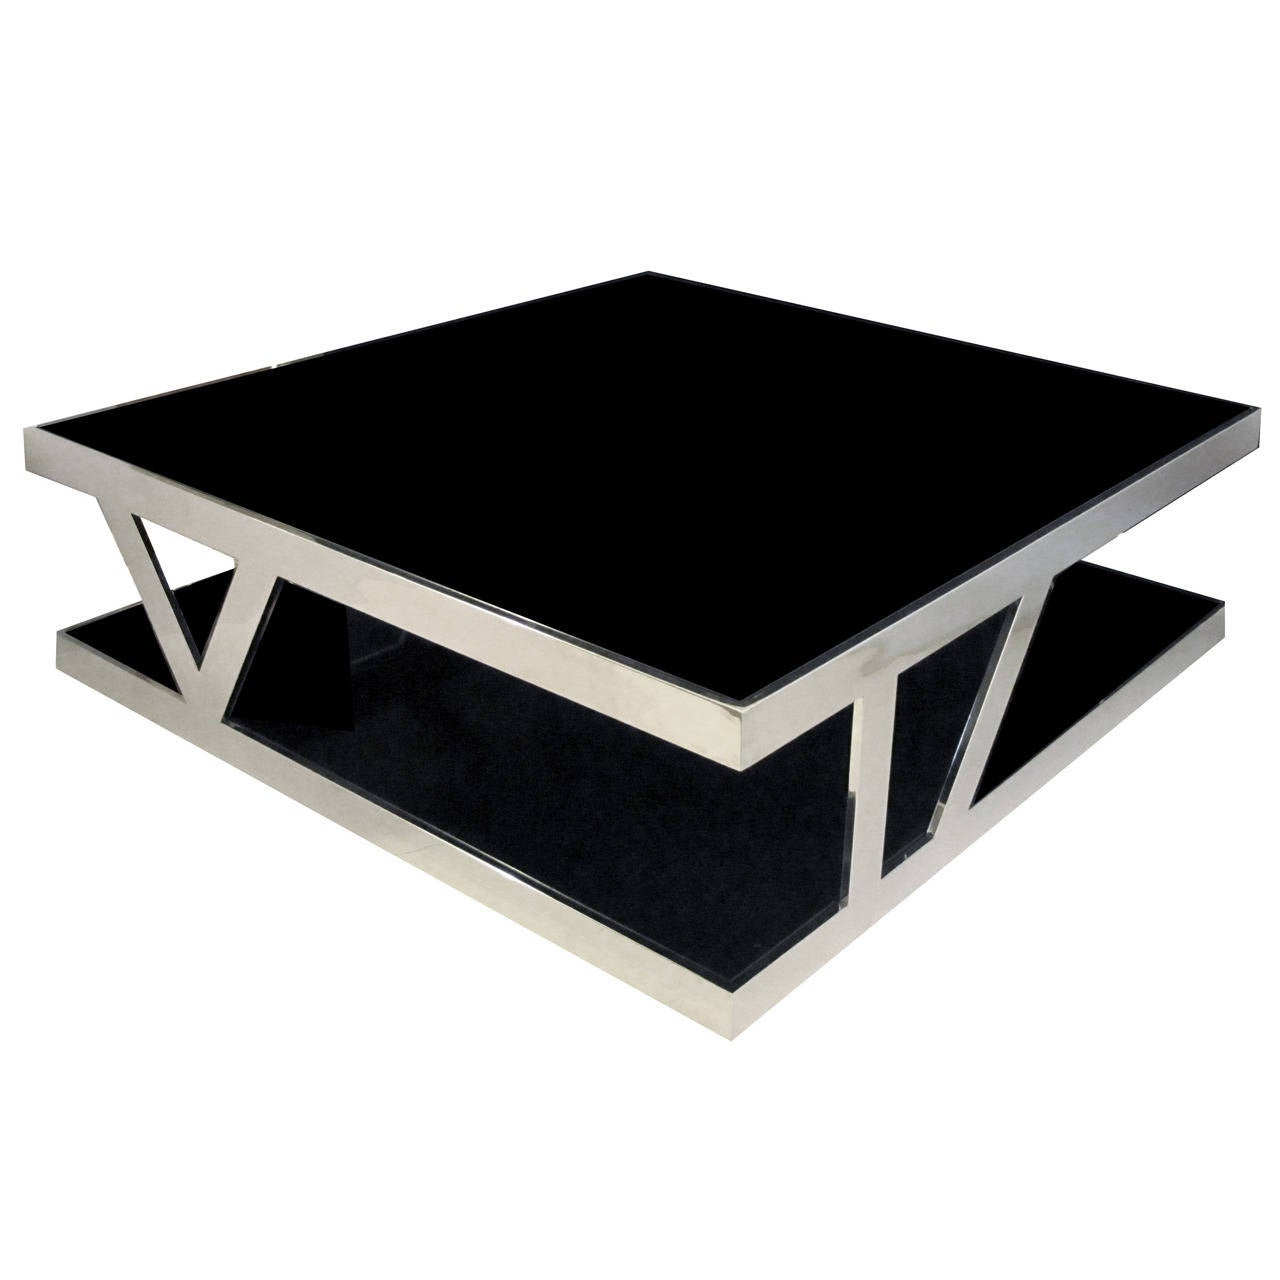 Large French Square Chrome Coffee Table With Black Glass Top And Shelf